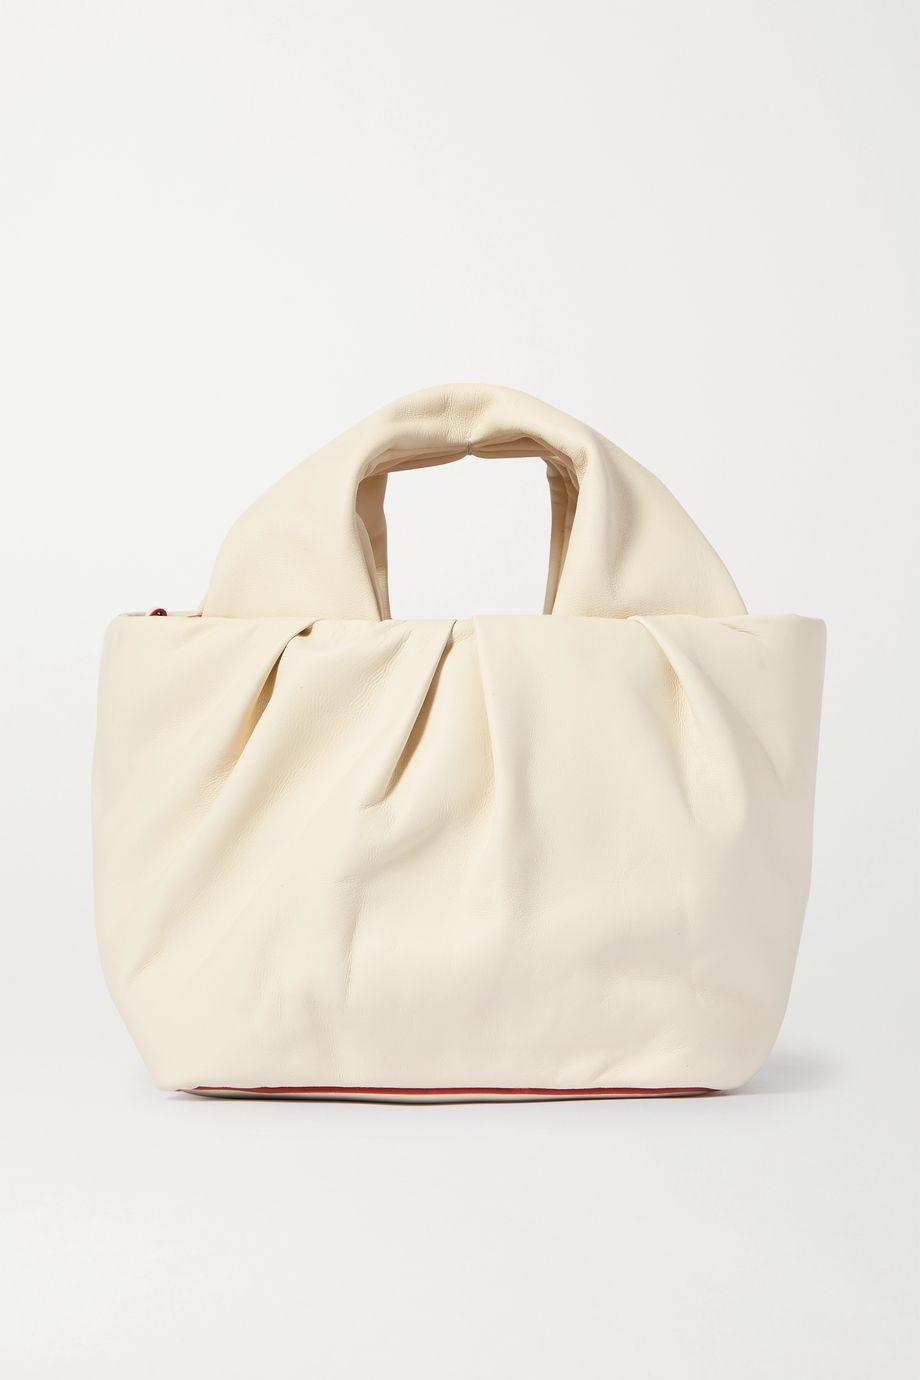 STAUD Lera small gathered leather tote